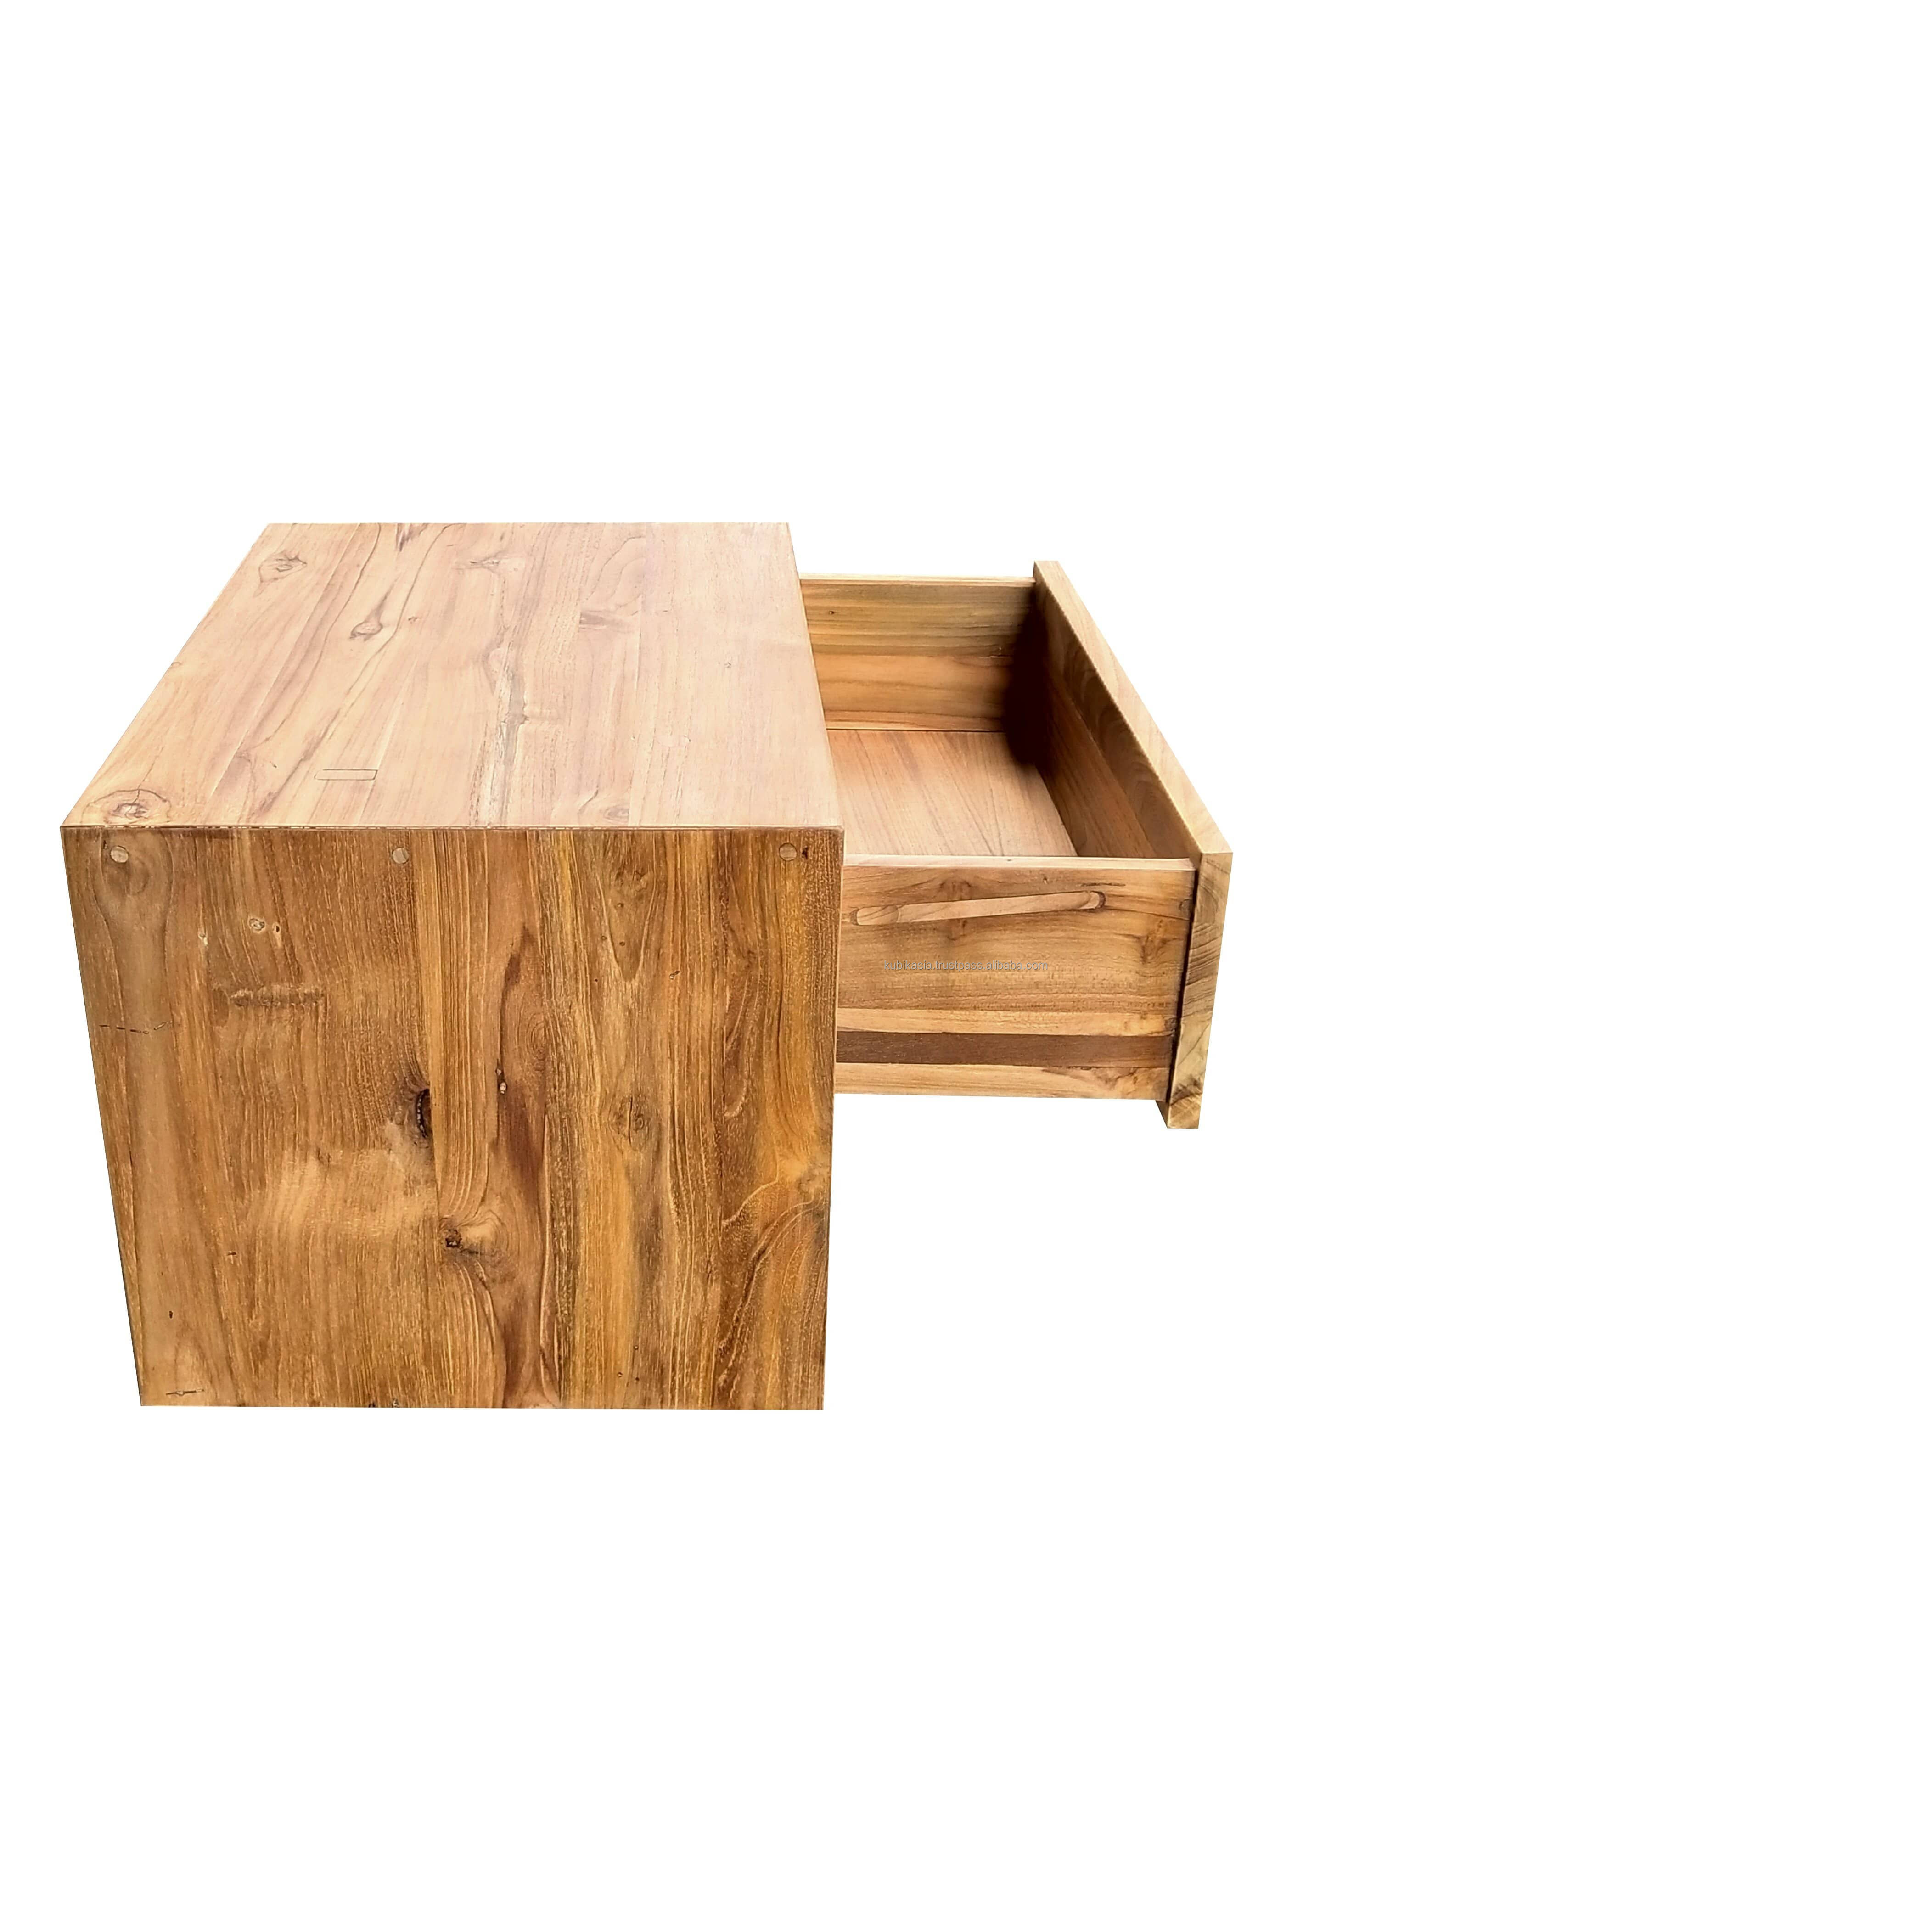 Premium OEM Cheap Sideboards Table Furniture (5) OEM Made From Solid Teak Wood For Home Furniture, Bedroom and Wholesale